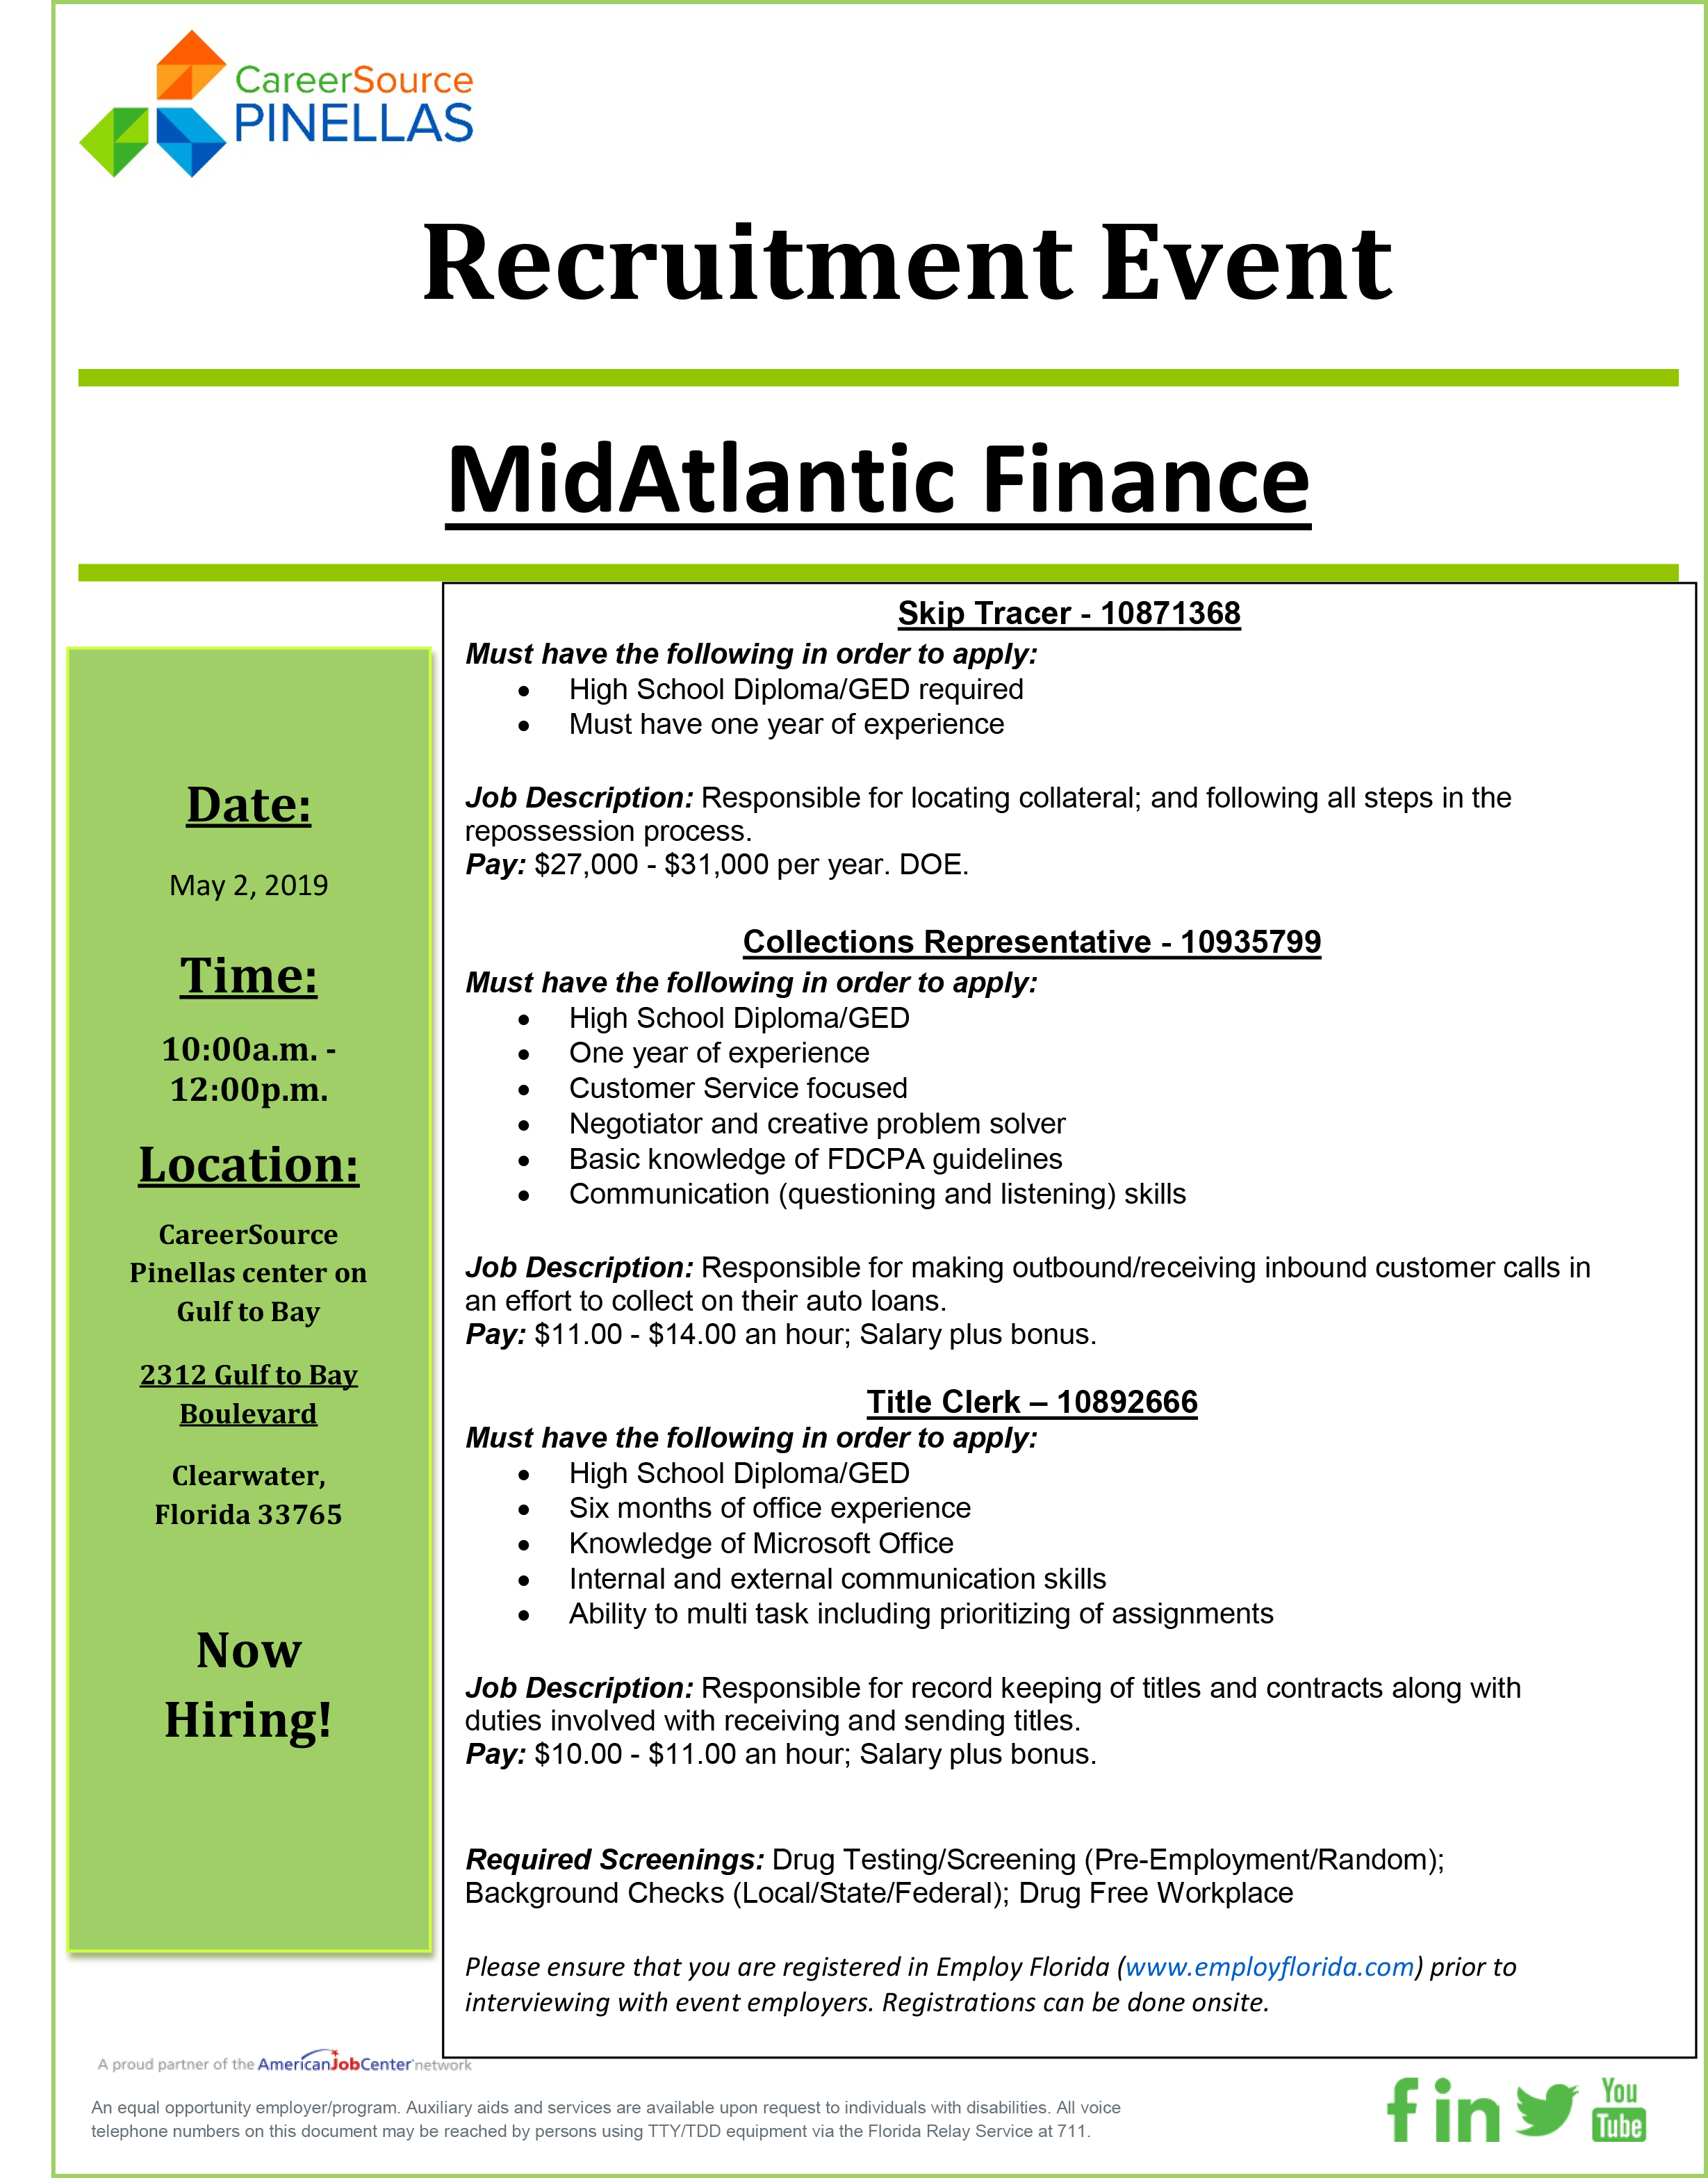 MidAtlantic Finance On-Site 5.2.2019 -2.jpg